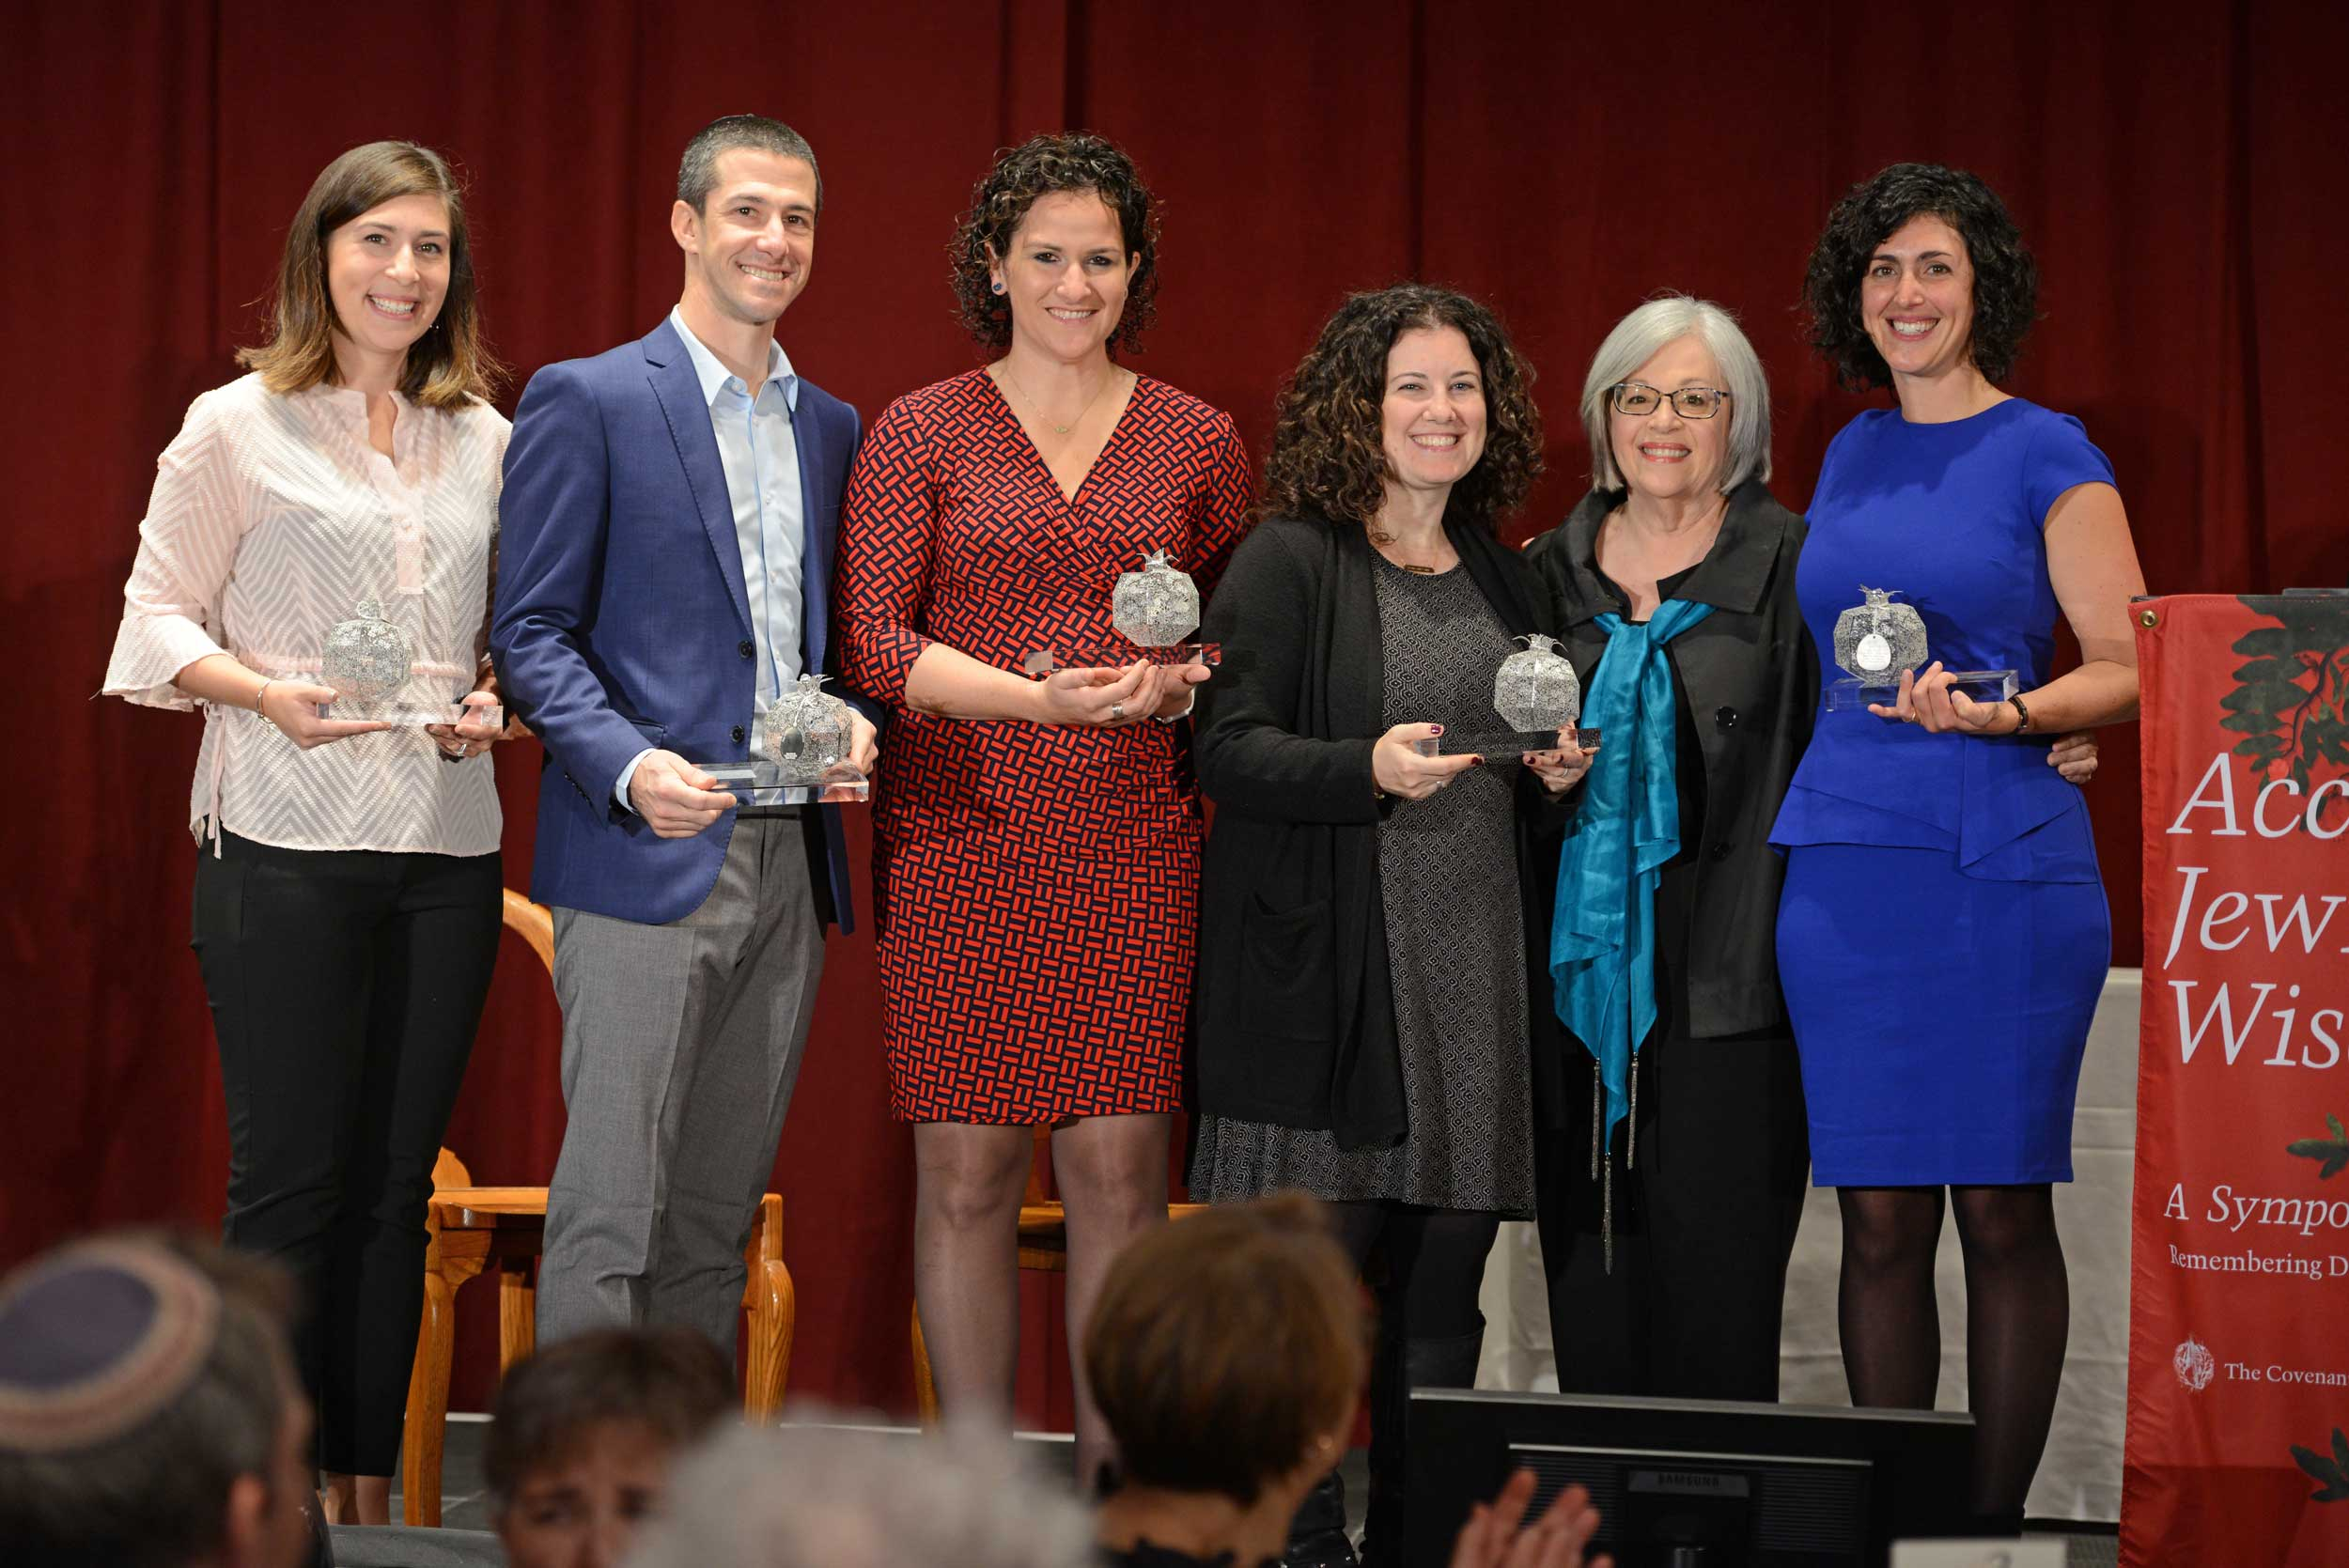 2018 Pomegranate Prize Awarded to Five Emerging Jewish Educators